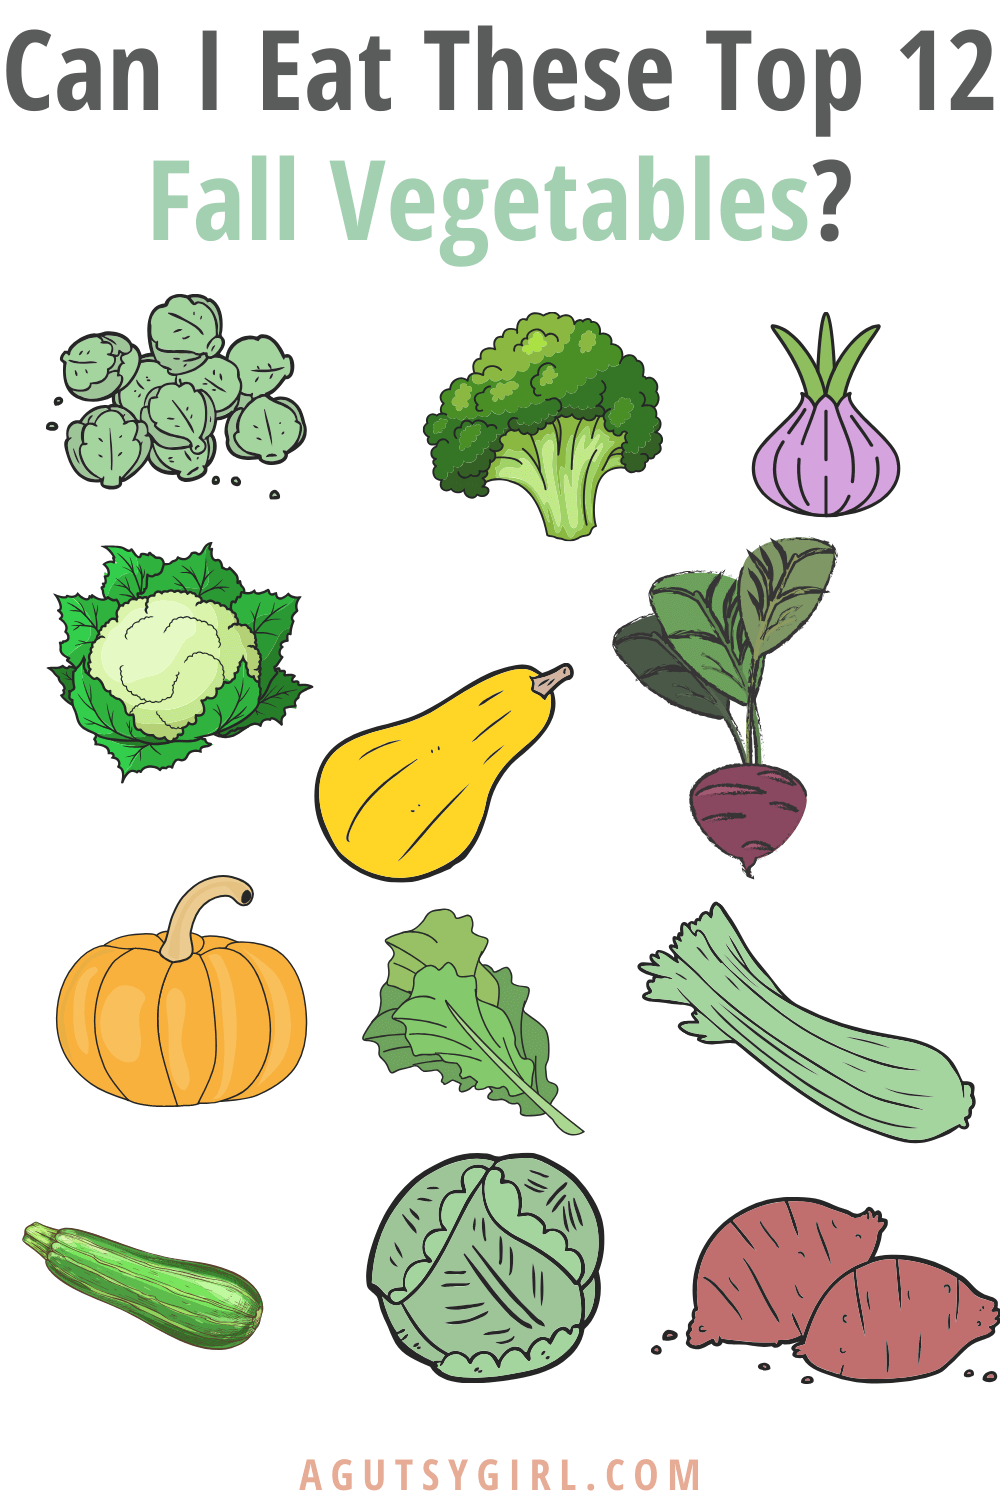 Can I Eat These Top 12 Fall Vegetables? agutsygirl.com #fall #vegetables #guthealth #healthyliving